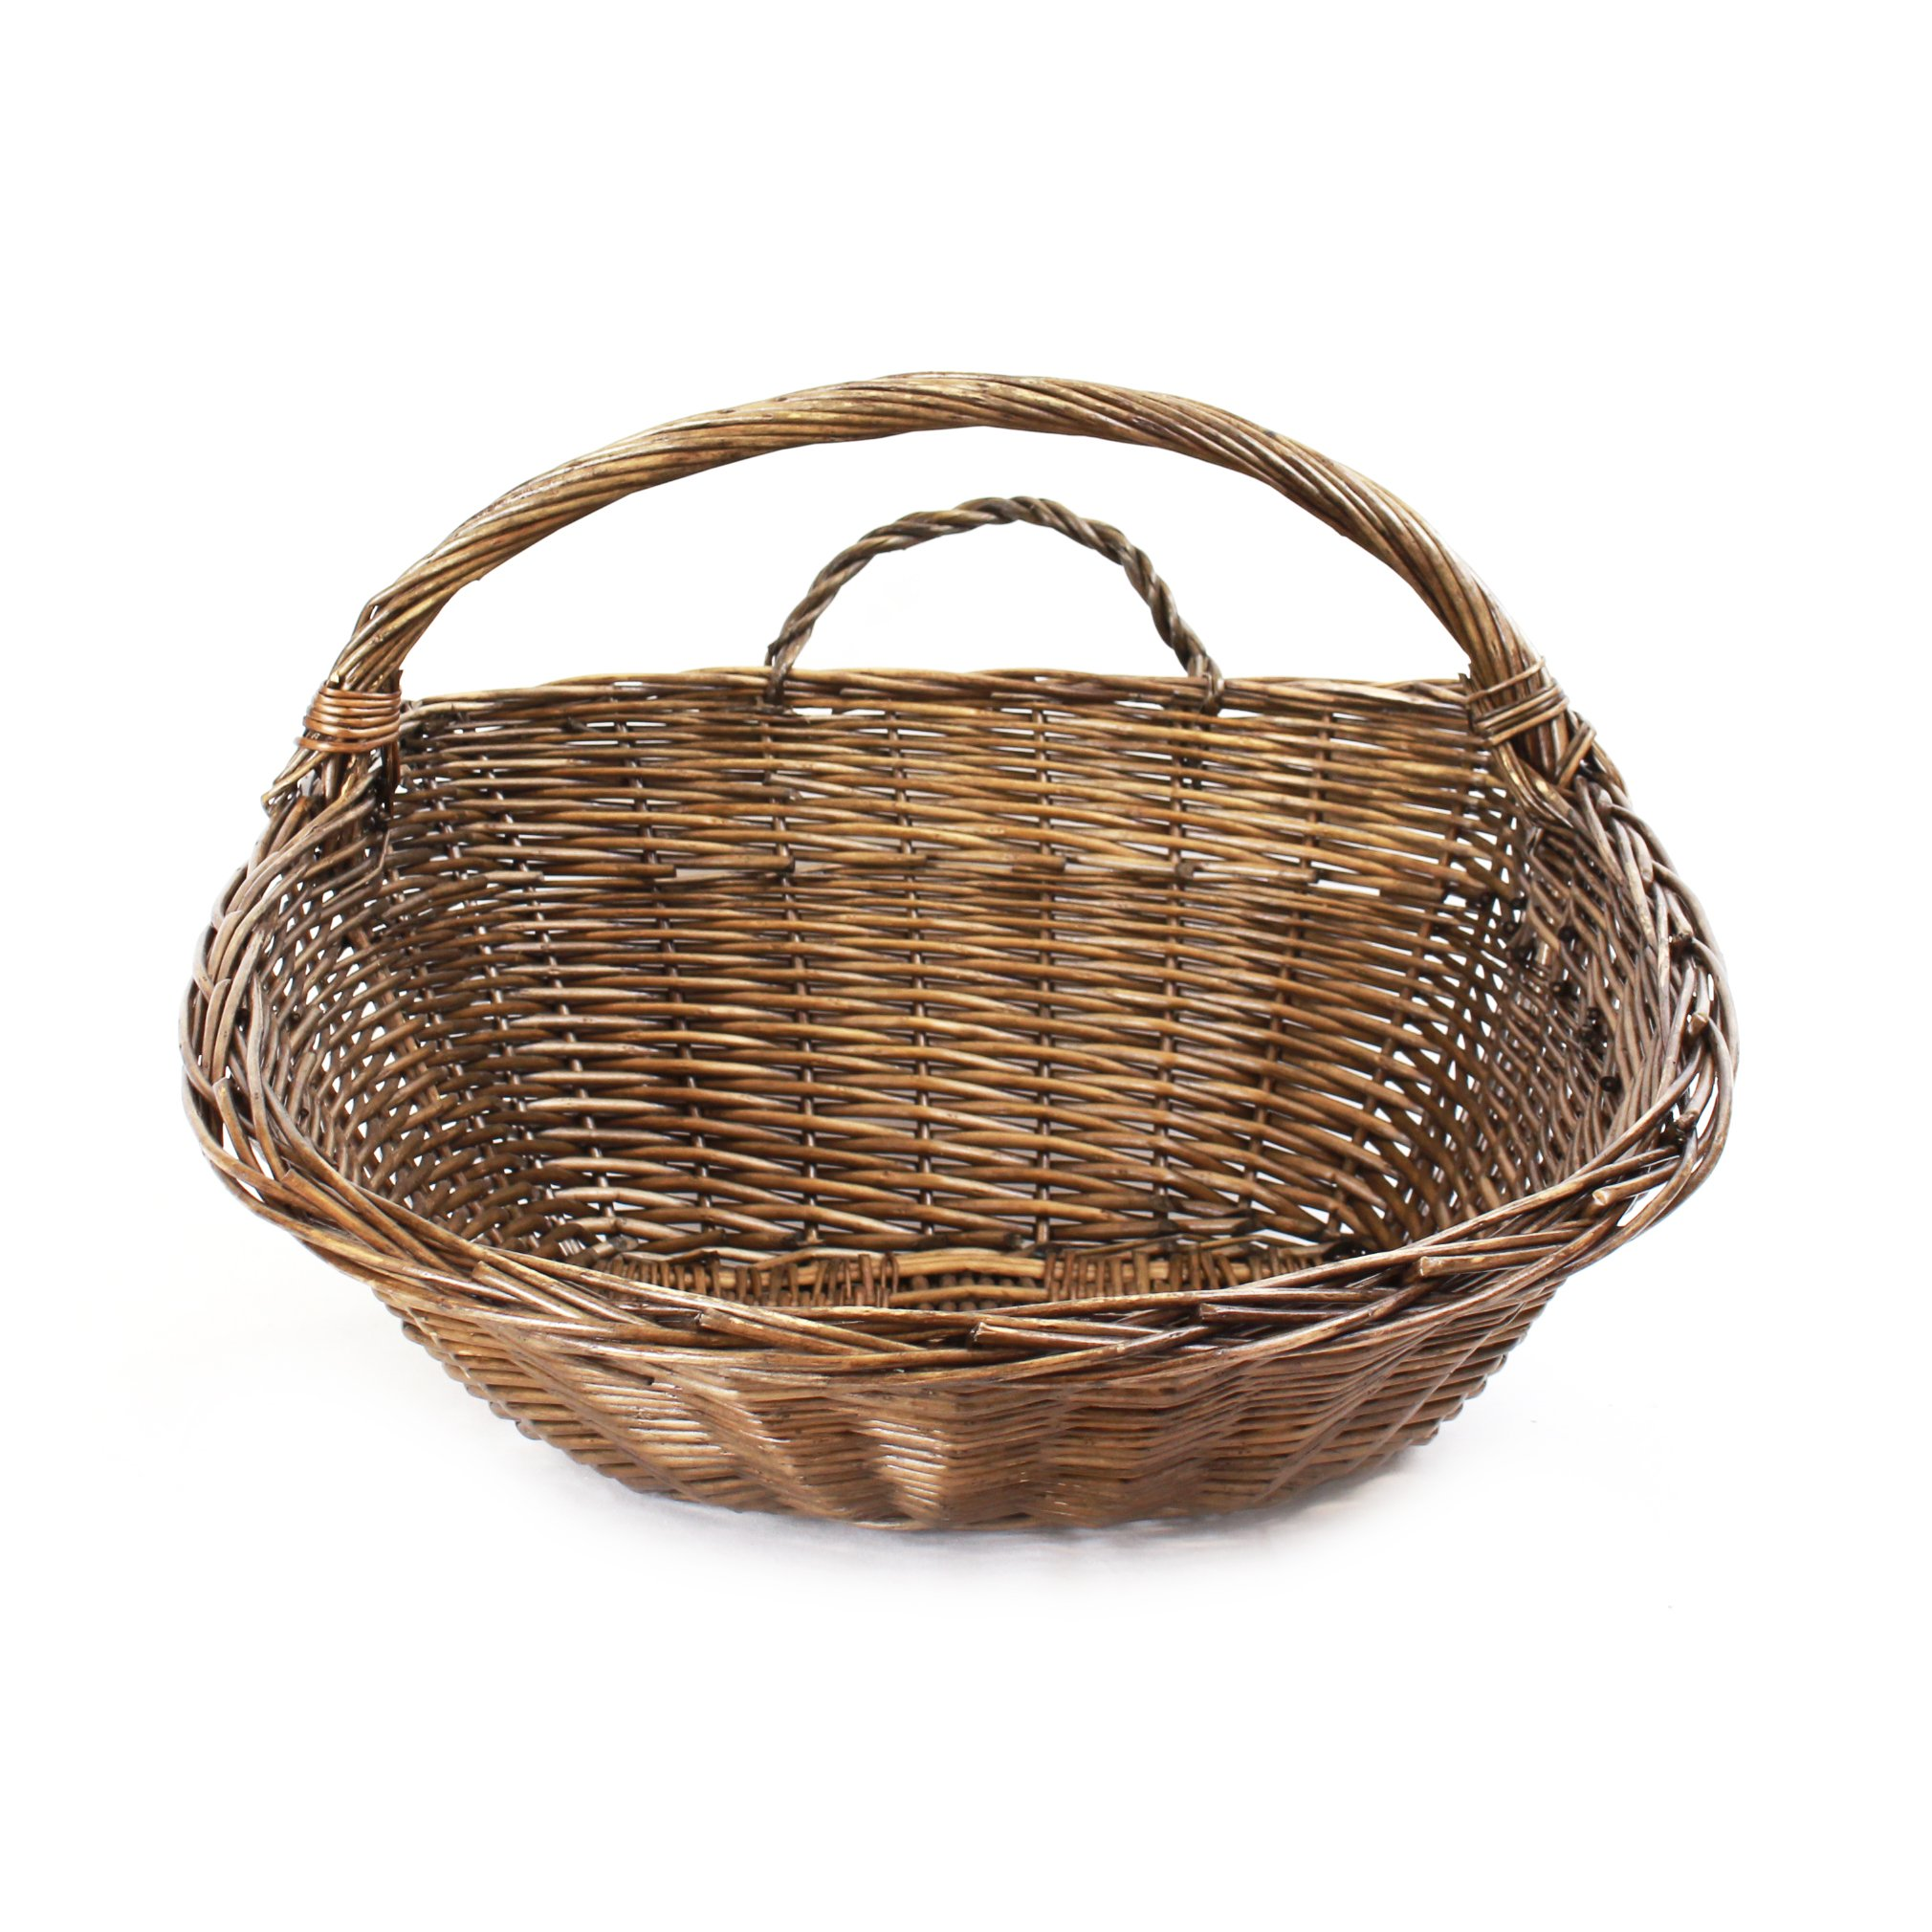 "Scoop Basket 24"" x 19"" x 9.5"" front"